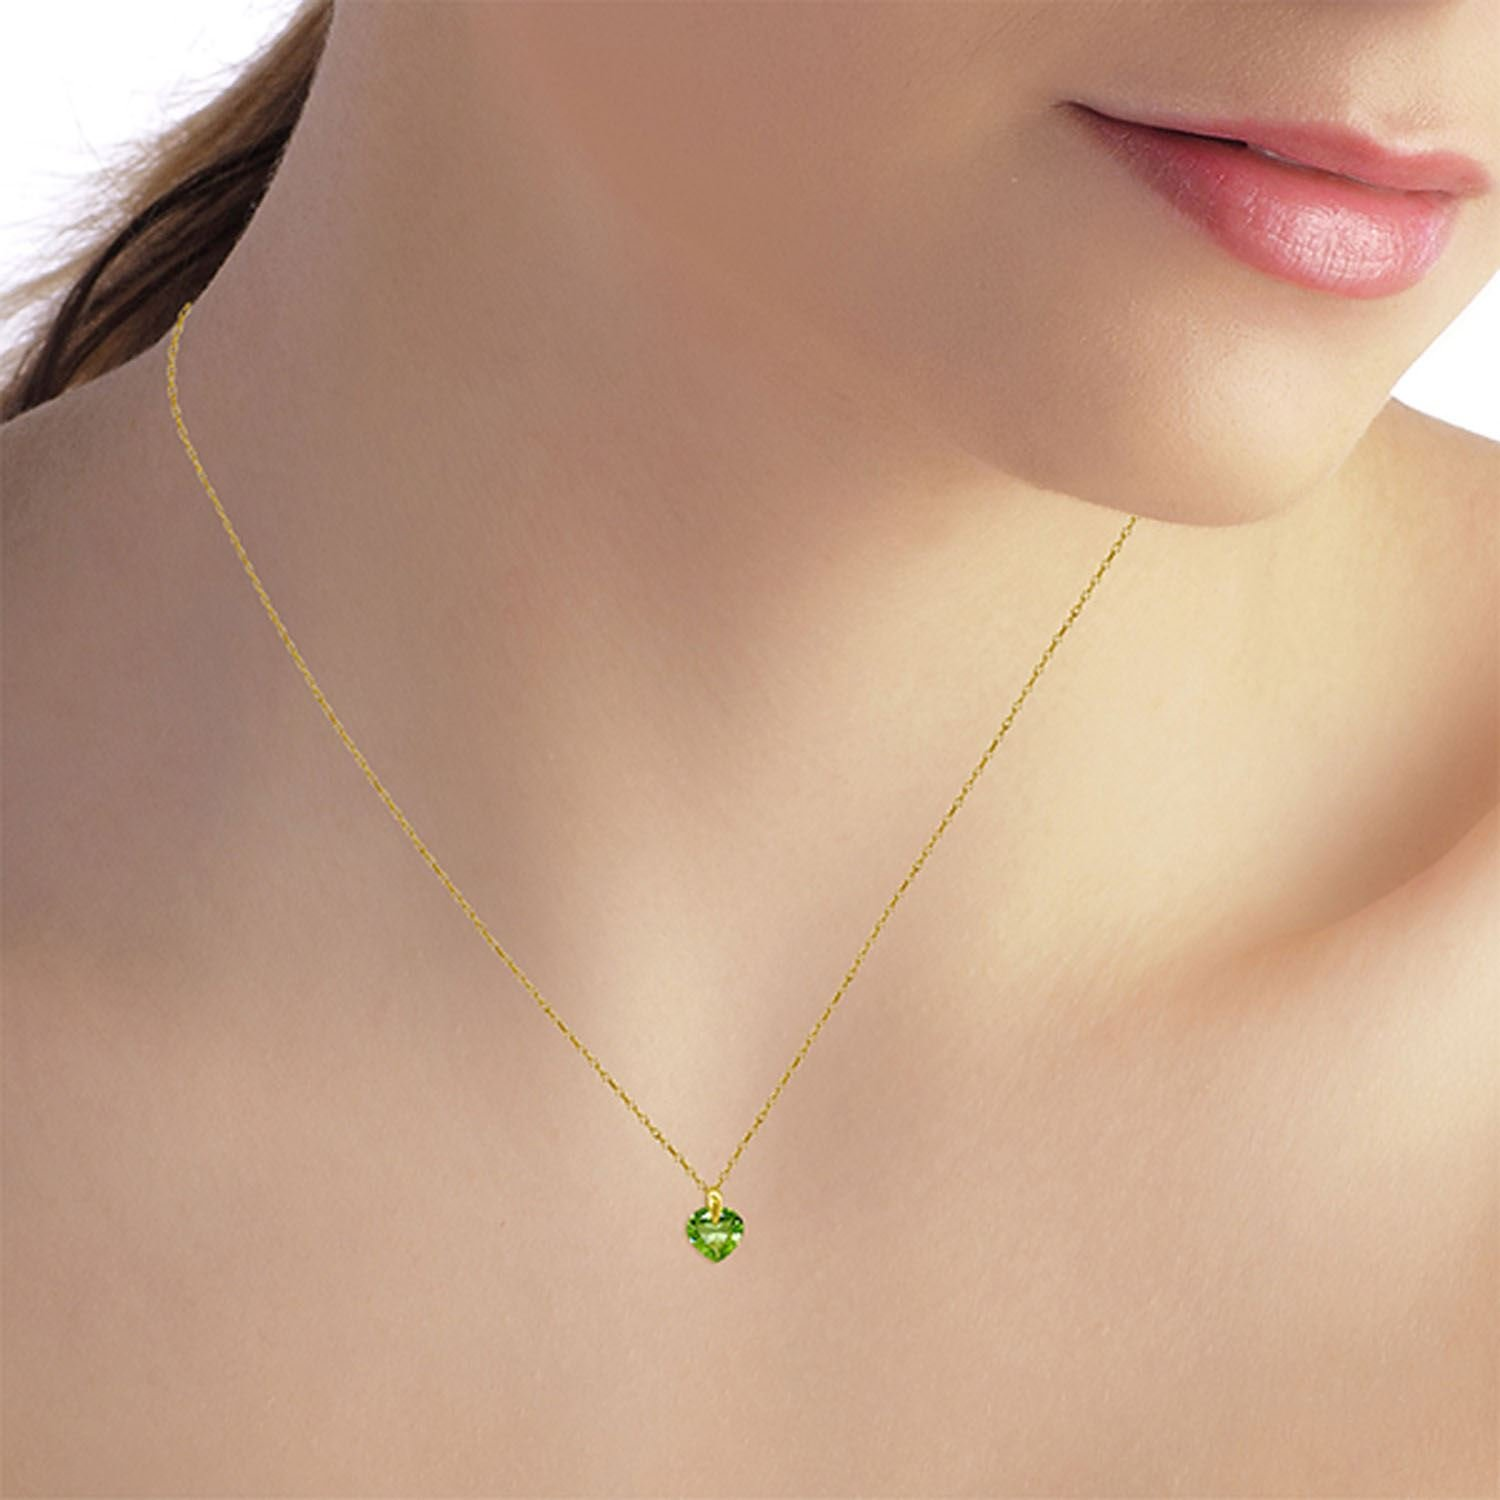 ALARRI 1.15 Carat 14K Solid Gold Recollections Of Love Peridot Necklace with 18 Inch Chain Length